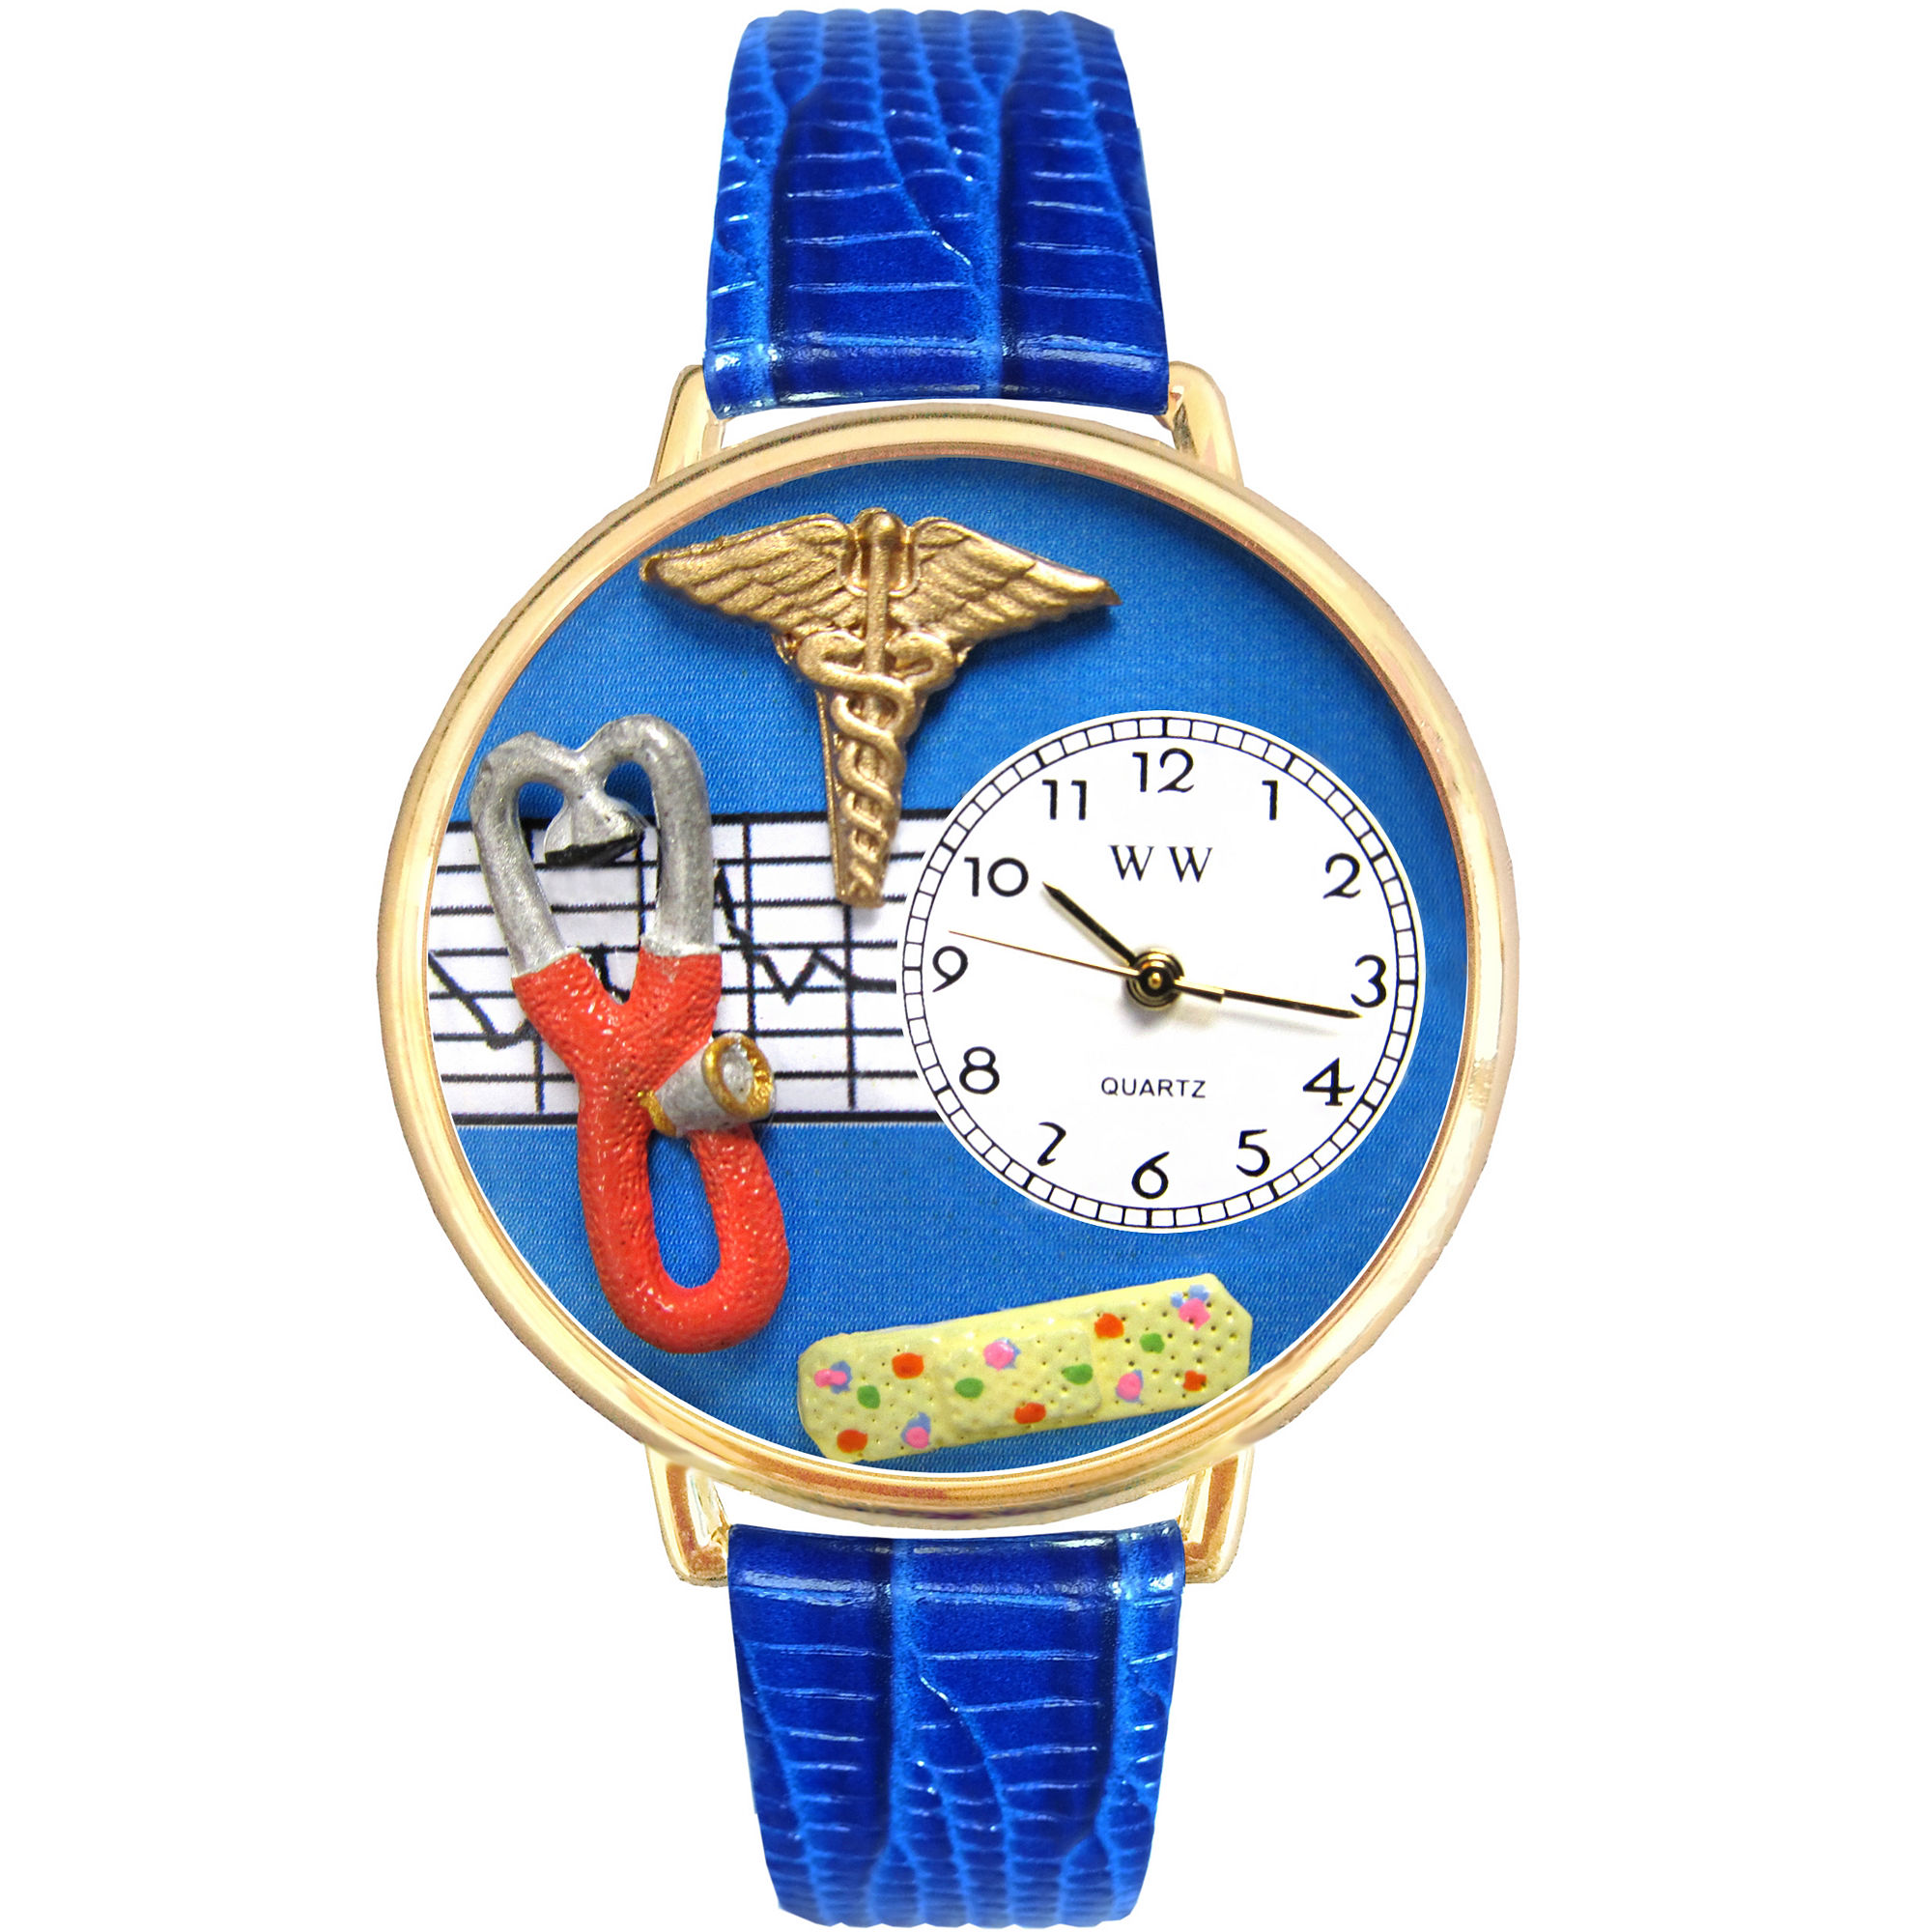 Whimsical Watches Personalized Nurse Womens Gold-Tone Bezel Blue Leather Strap Watch